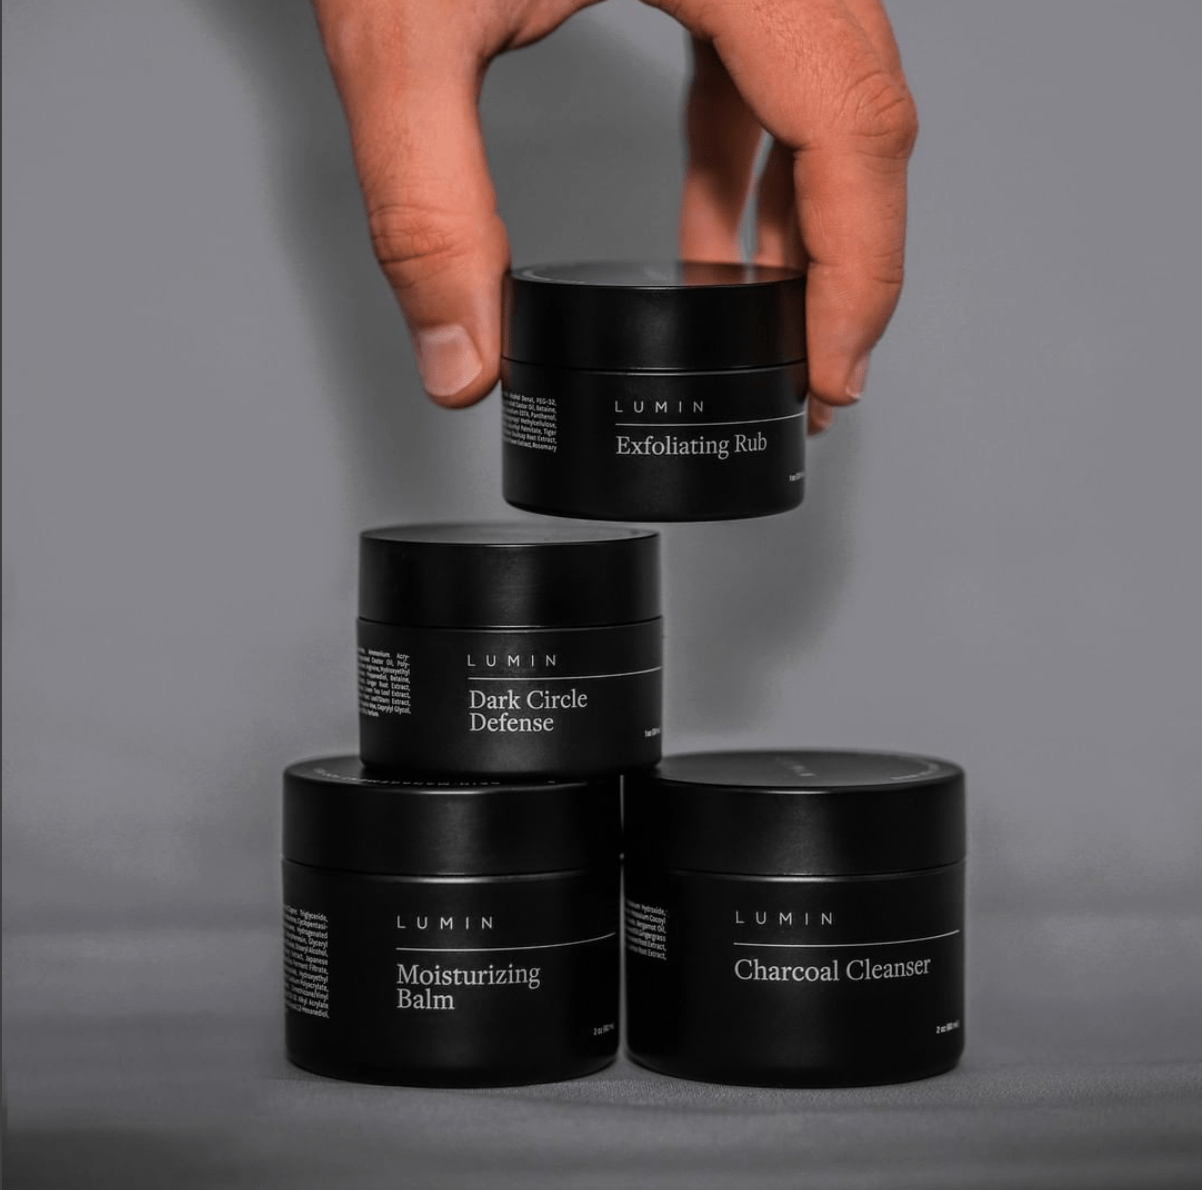 Lumin The Skincare Subscription Every Man Should Buy 2 Cents Skin Care Skincare Gift Set Skin Care Gifts